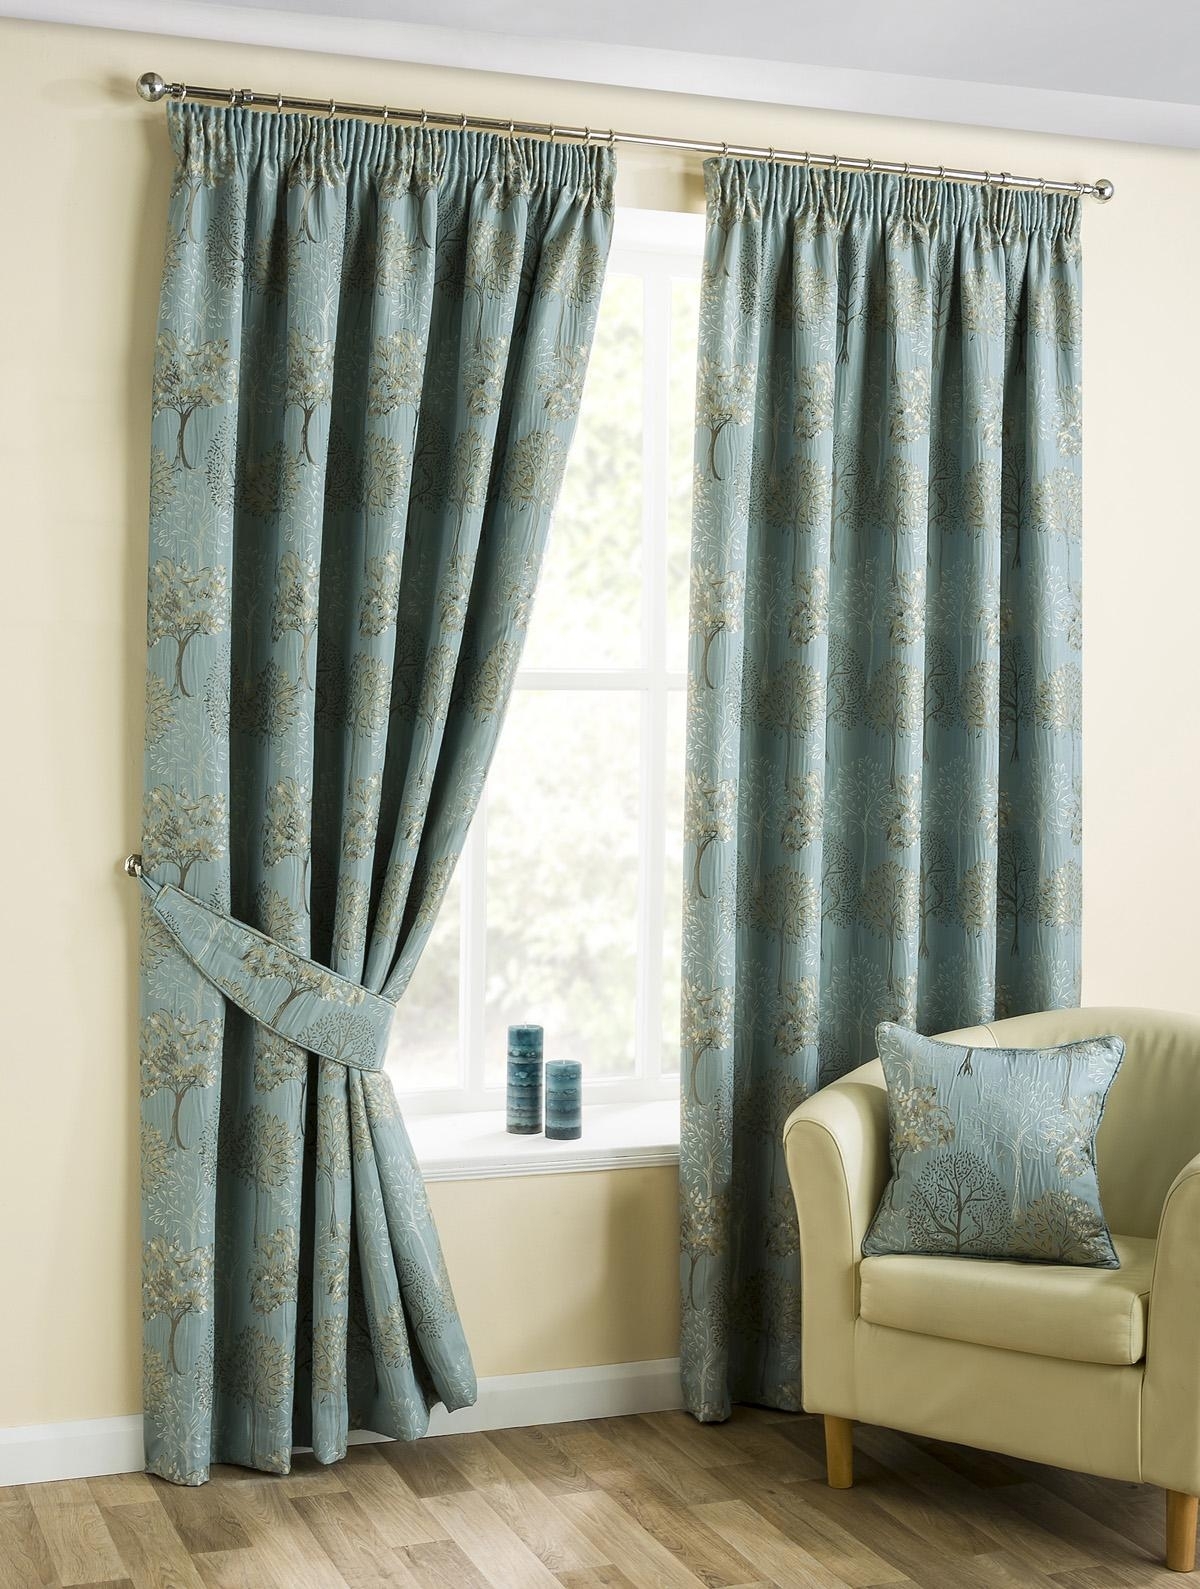 Thick Curtains For Bedroom Curtain Idea Also Short Drop Blackout Regarding Short Drop Ready Made Curtains (View 2 of 15)